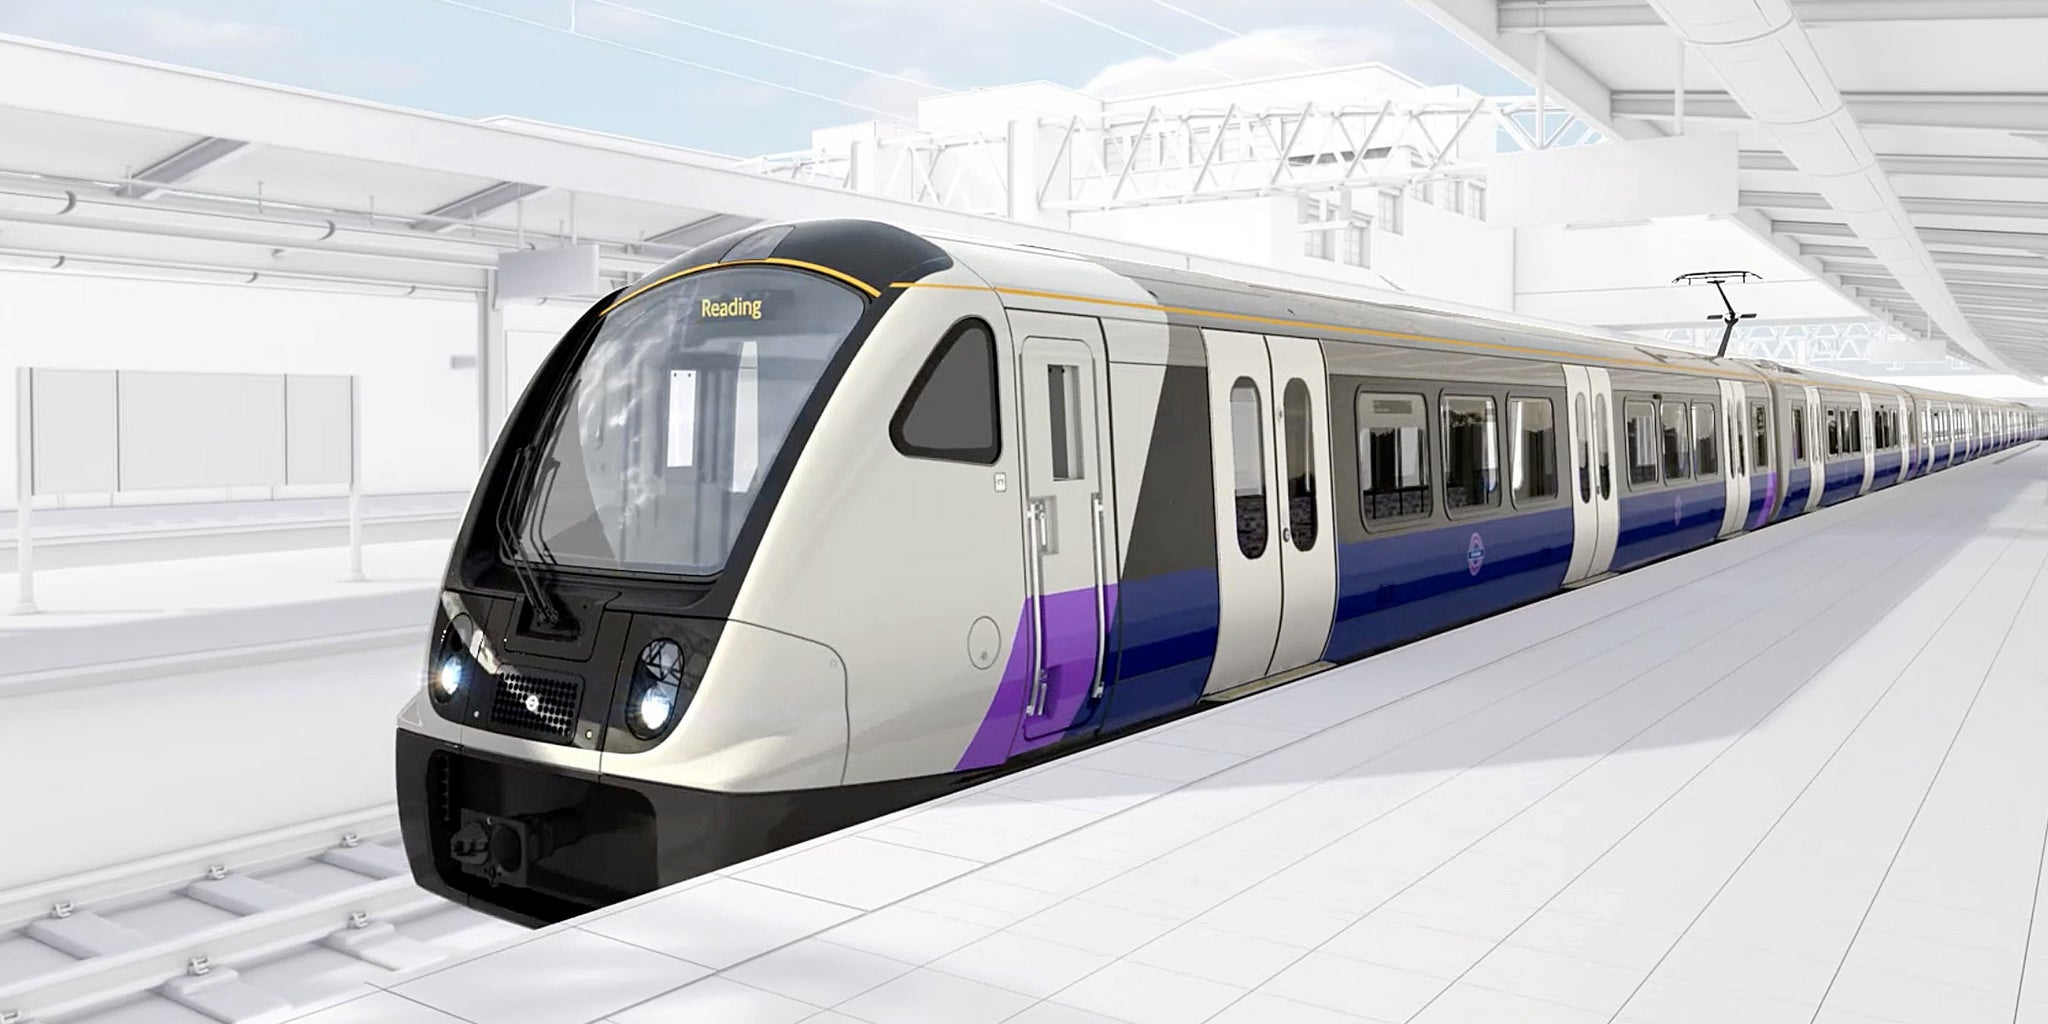 London's Next-Gen Commuter Trains Will Feature4G, Wi-Fi And AC As Standard